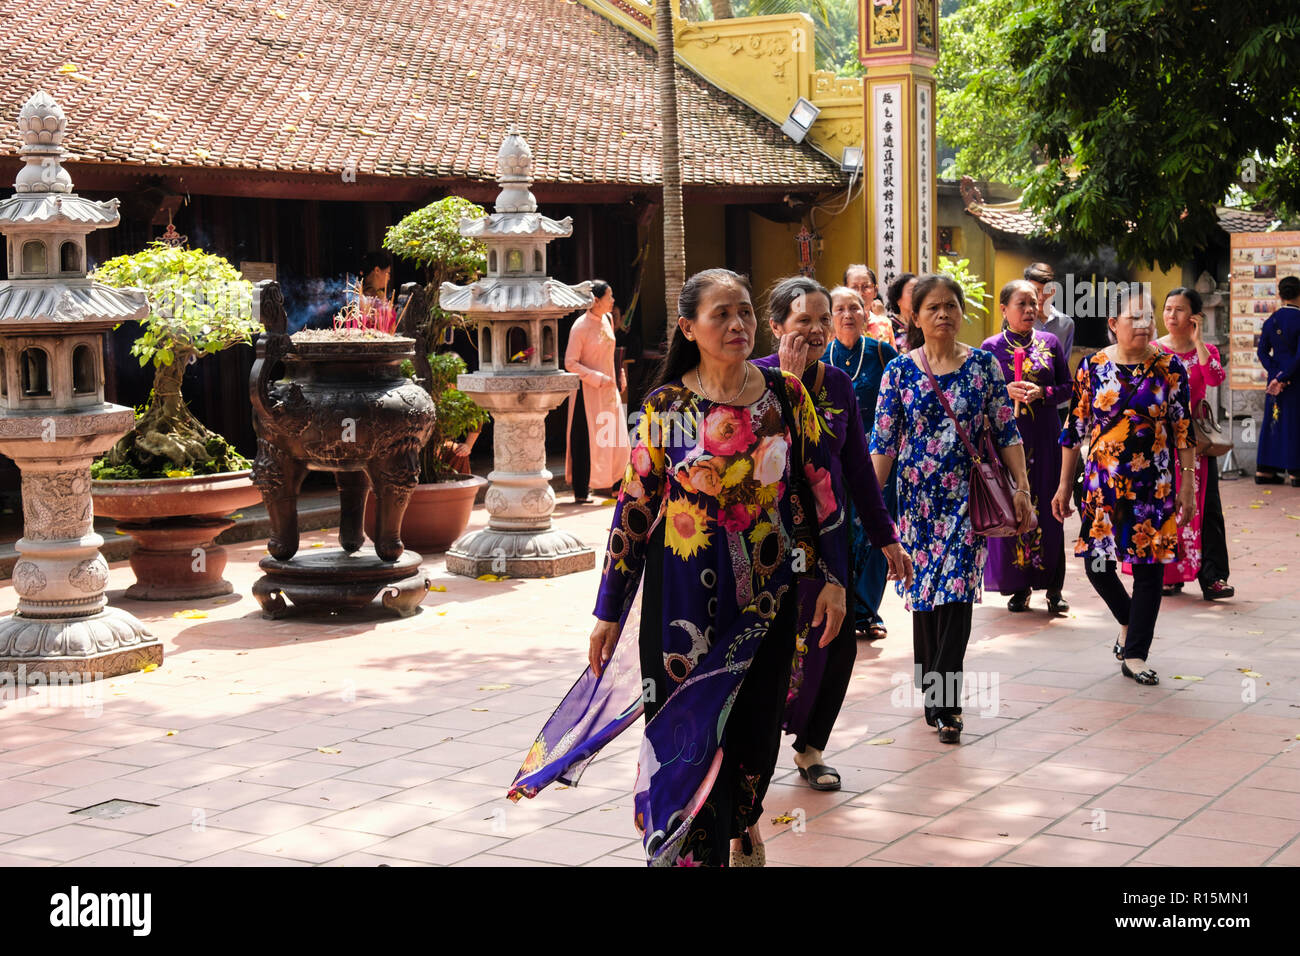 Asian women in tradional dress visiting Tran Quoc temple. Hanoi, Vietnam, Asia - Stock Image